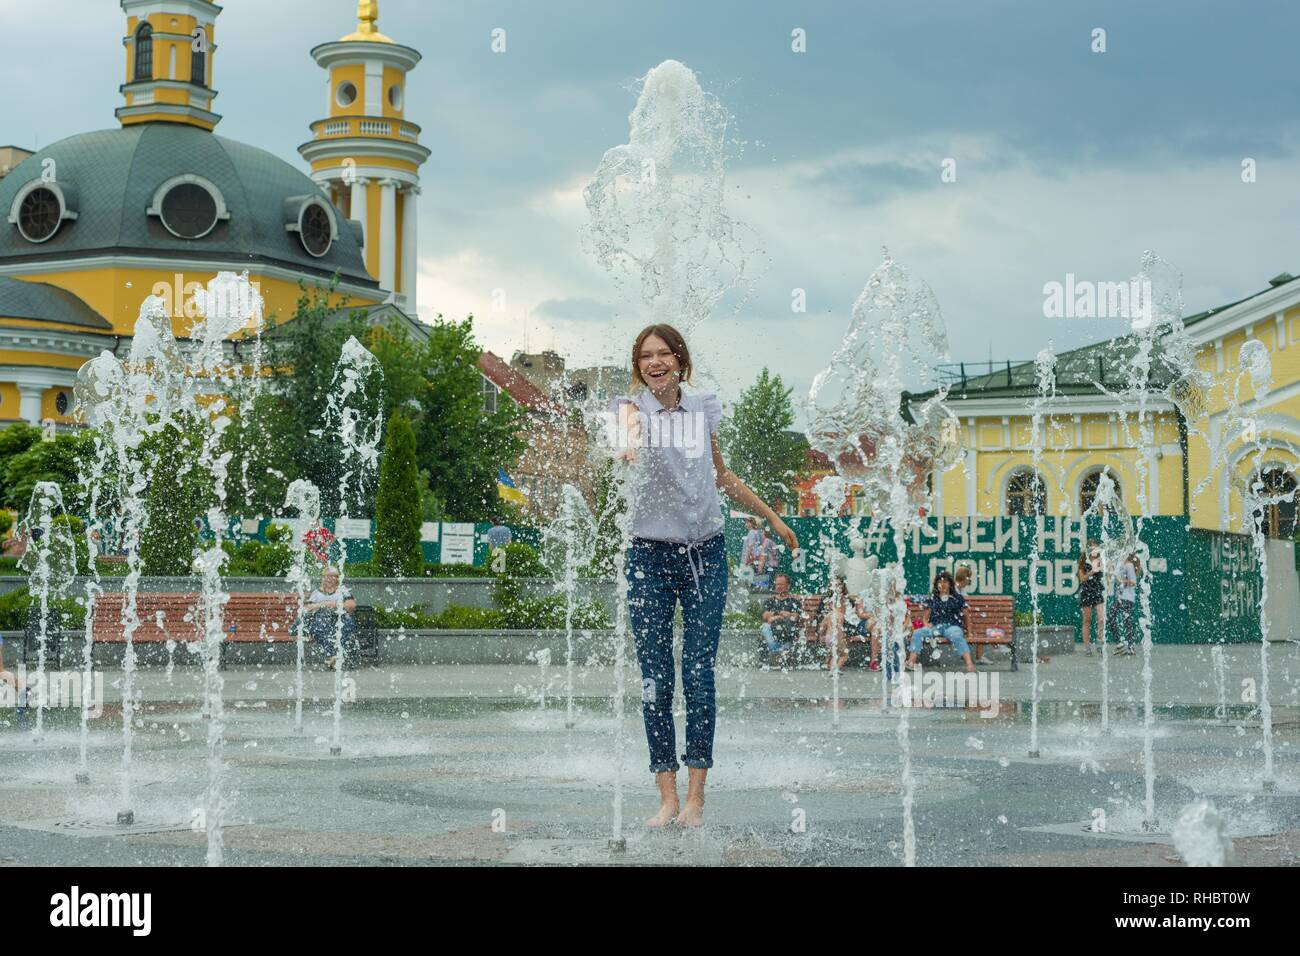 Kyiv UA, 19-07-2018. Young teenage girl in fountain. Girl happy, clothes wet, background city architecture - Stock Image